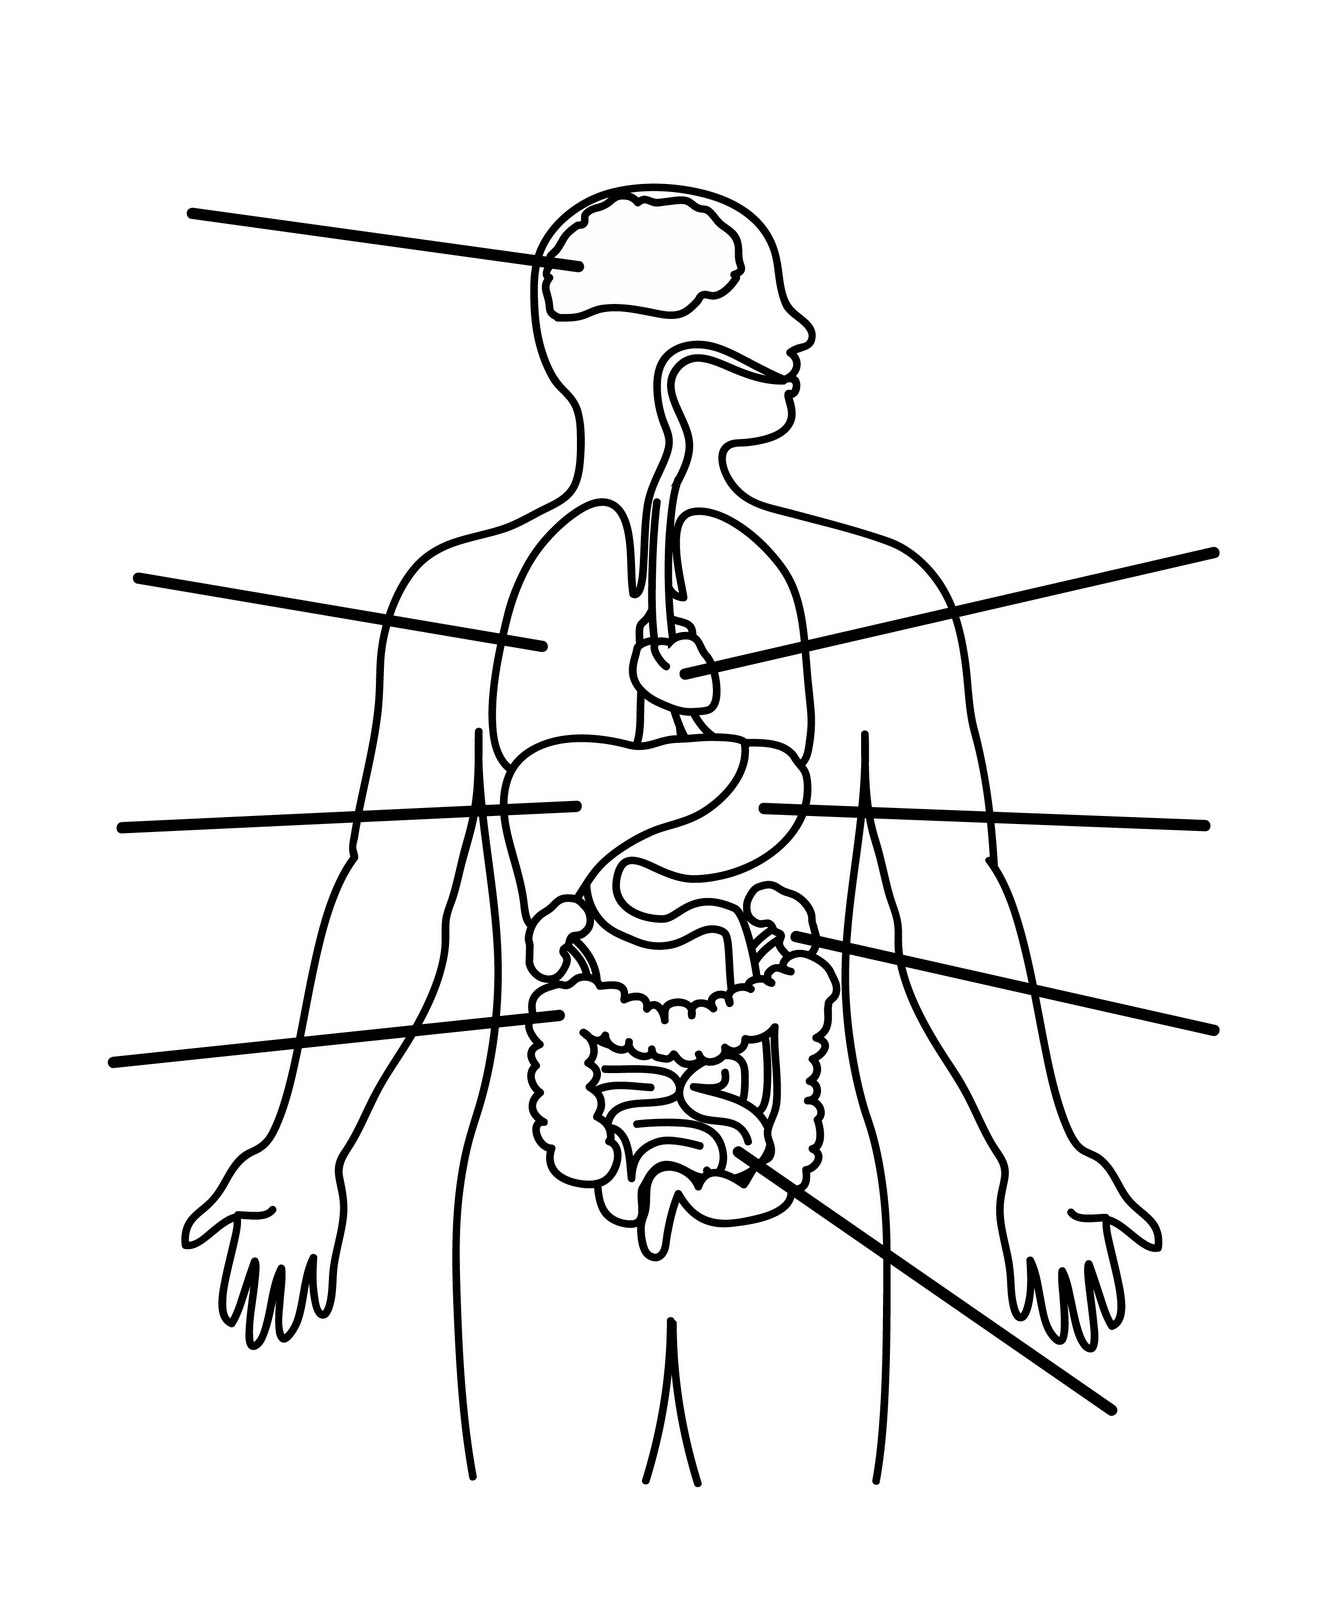 human organ systems coloring pages - photo#10